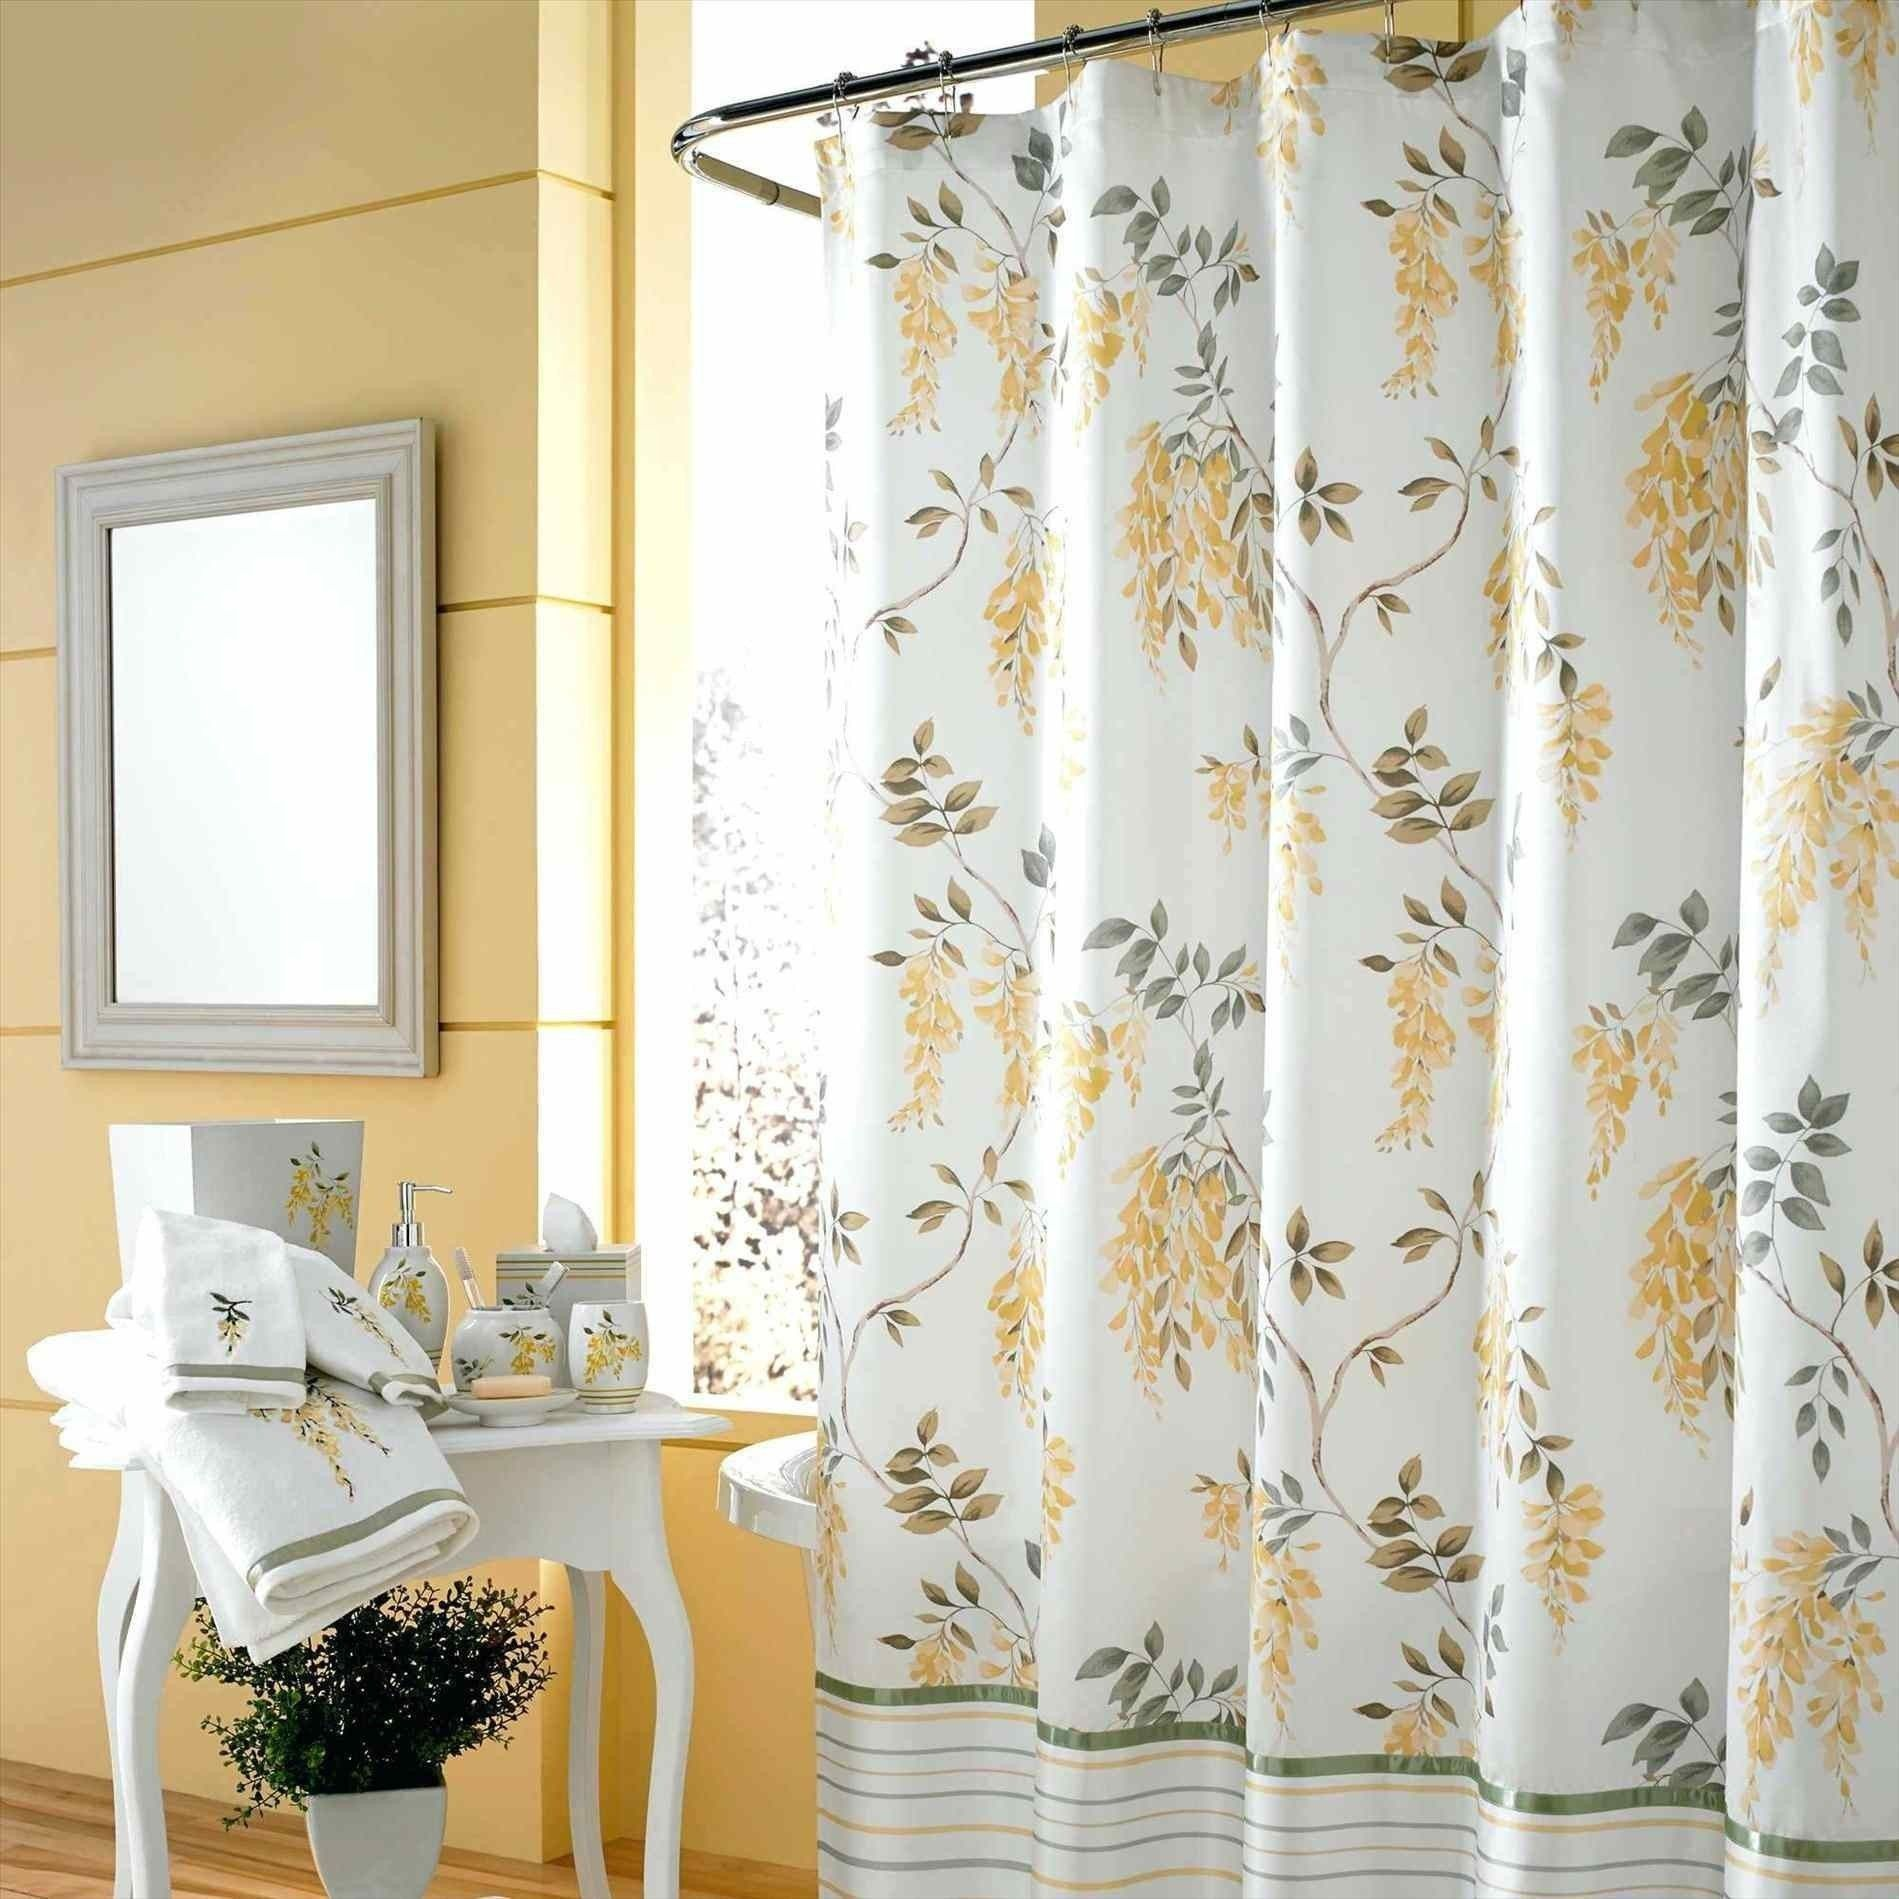 Best Of Double Swag Shower Curtain Set